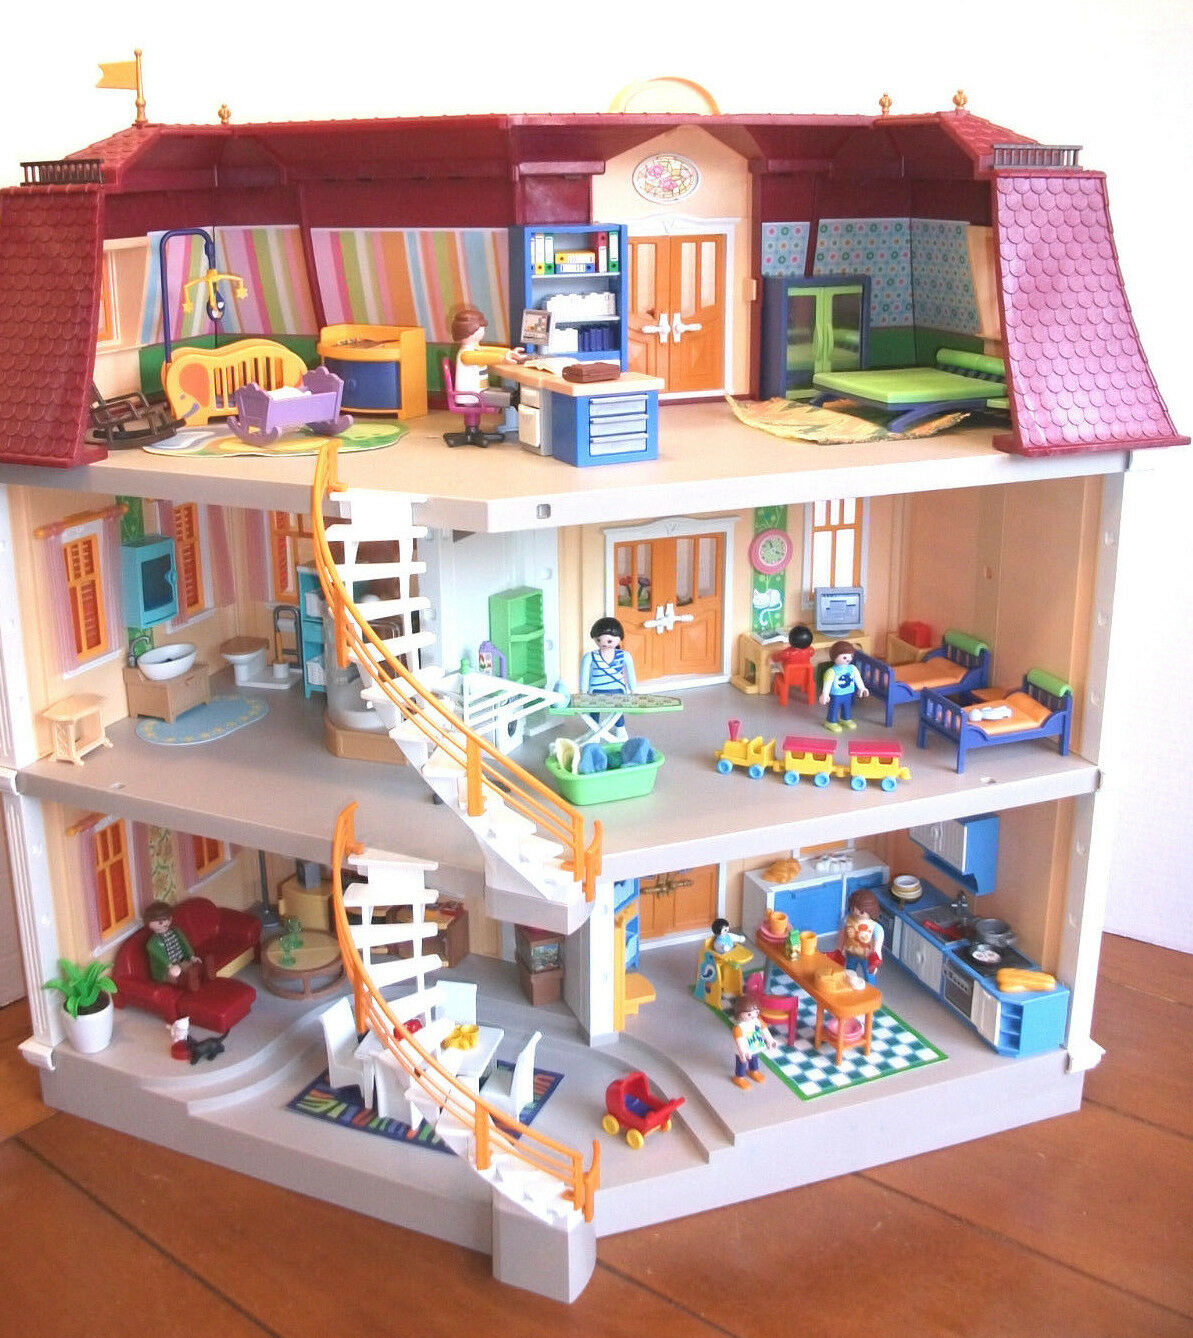 5302 Playmobil Playmobil 5302 Large Grand Mansion Dollhouse With Lots Of Furniture